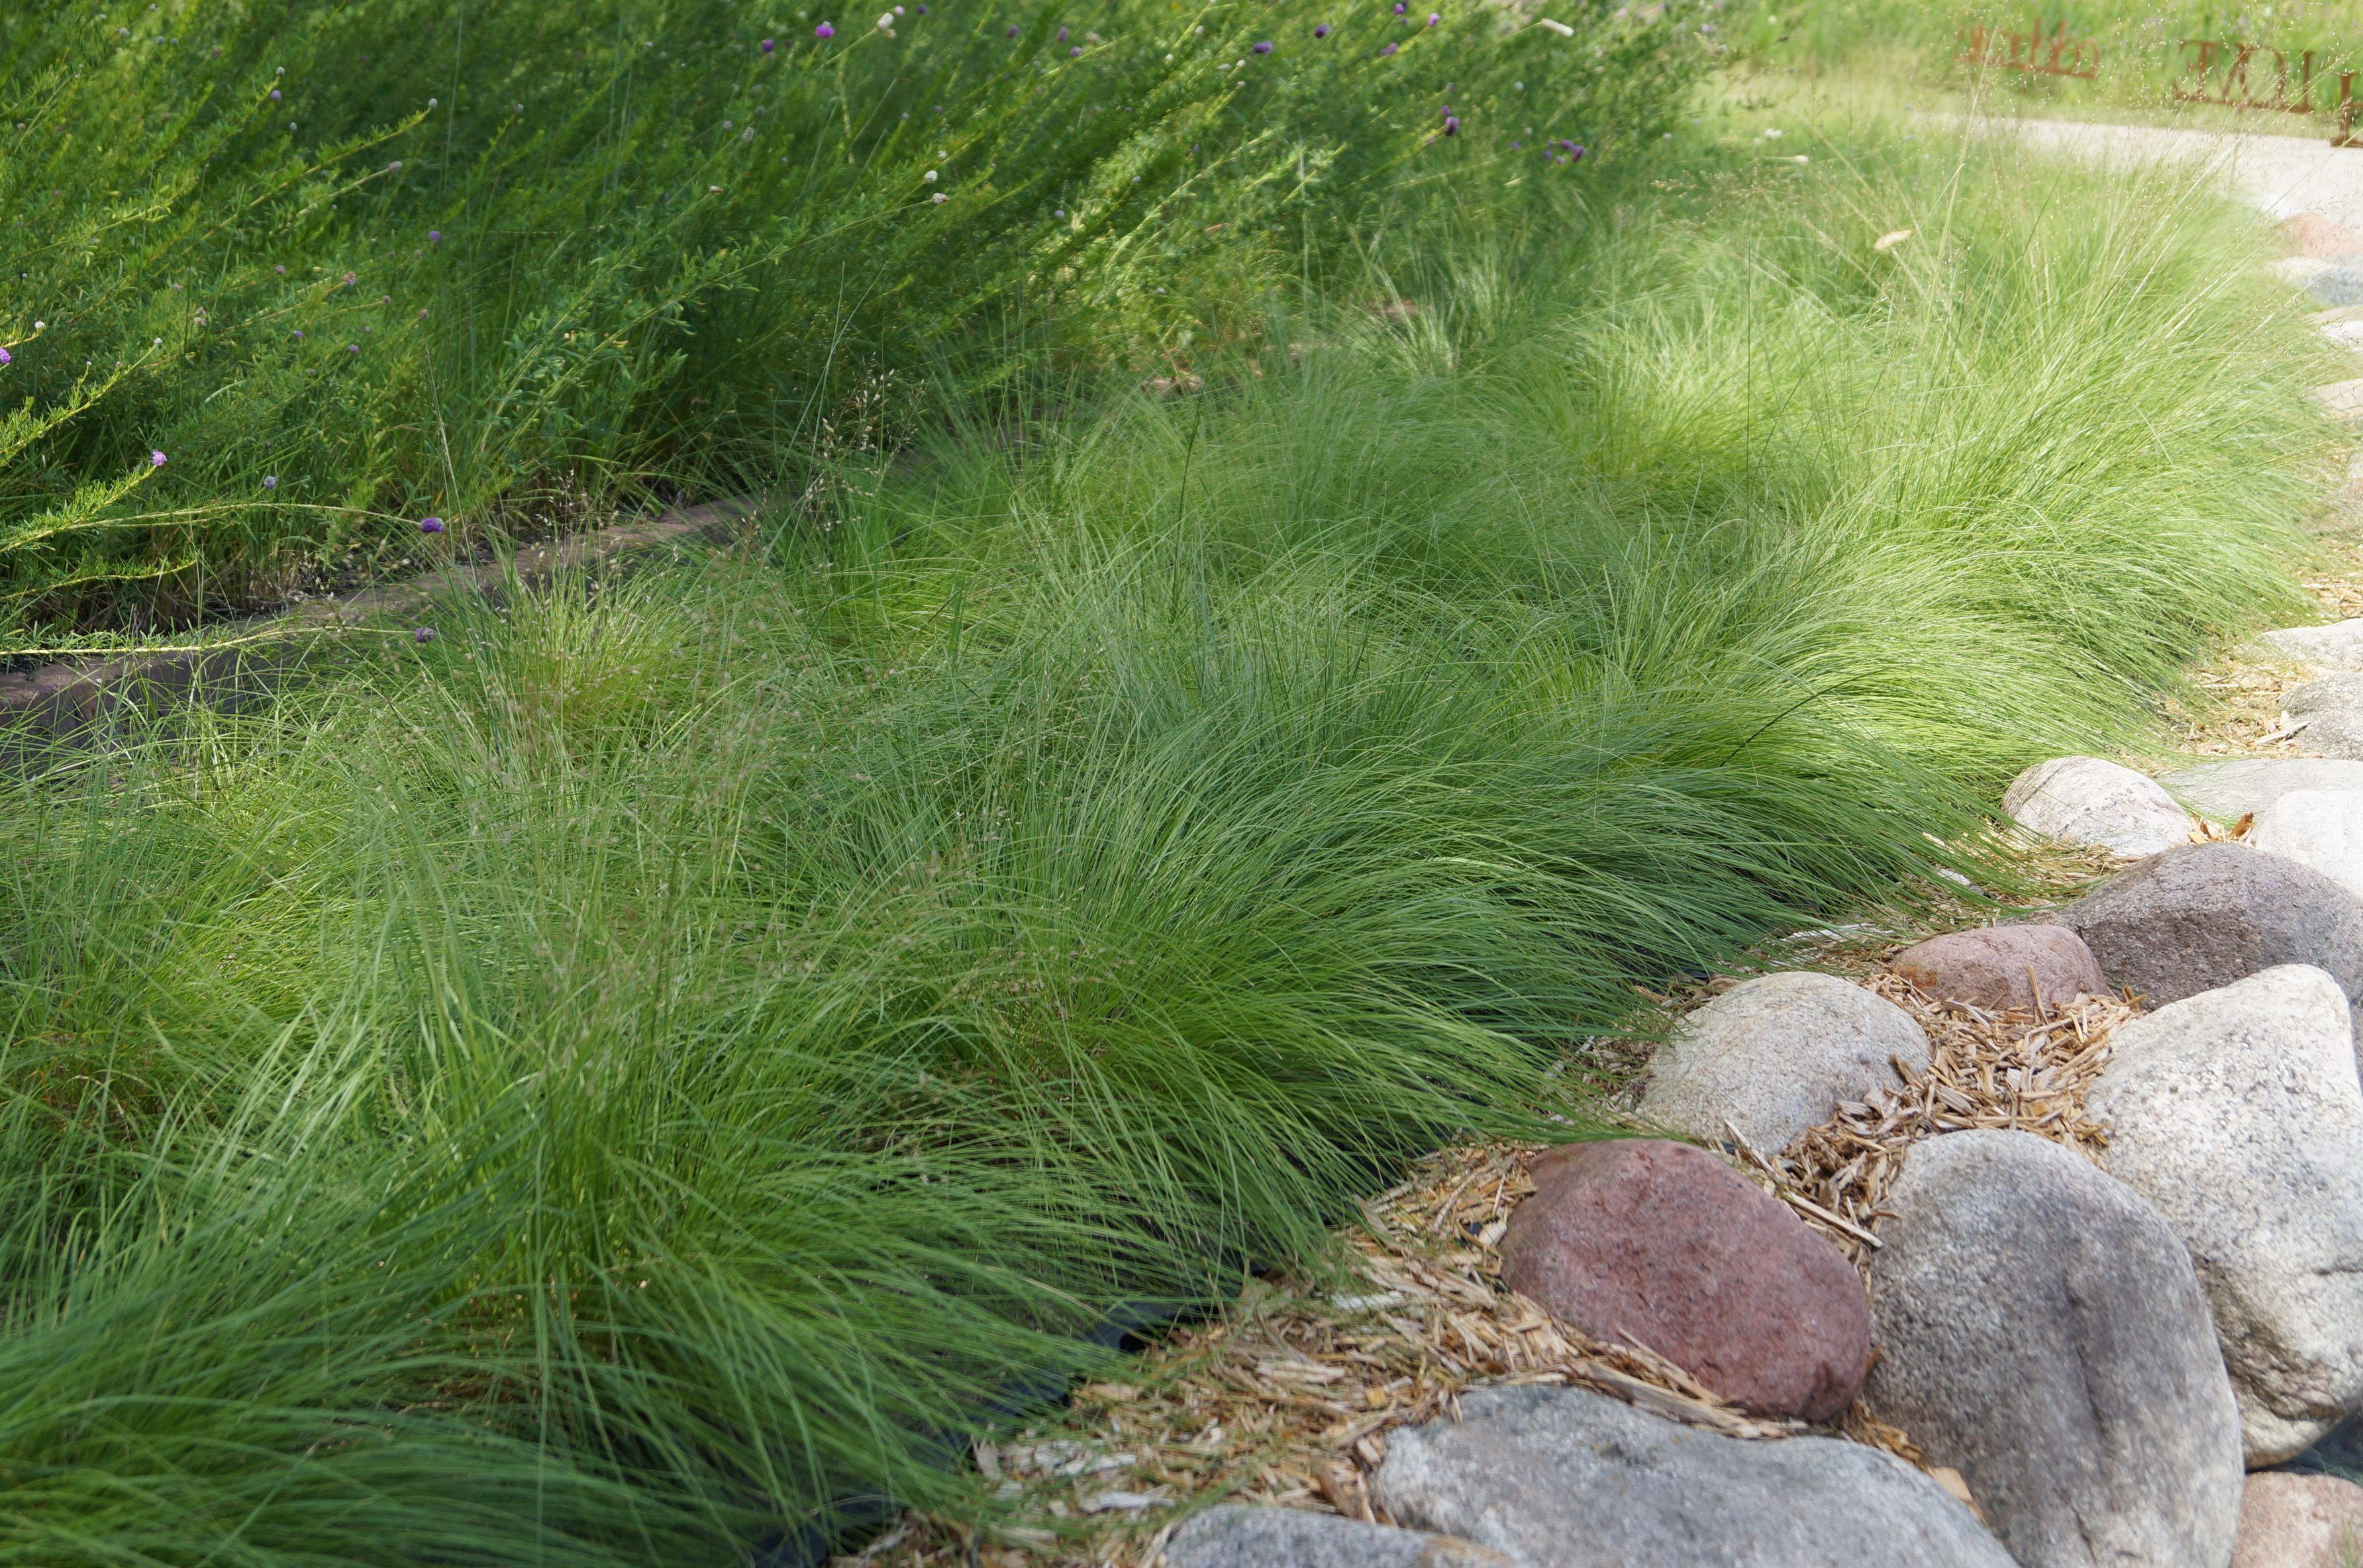 Buy blue dune lyme grass in nw arkansas - 17 Best Images About Grass On Pinterest Gardens Ophiopogon Japonicus And Perennial Grasses